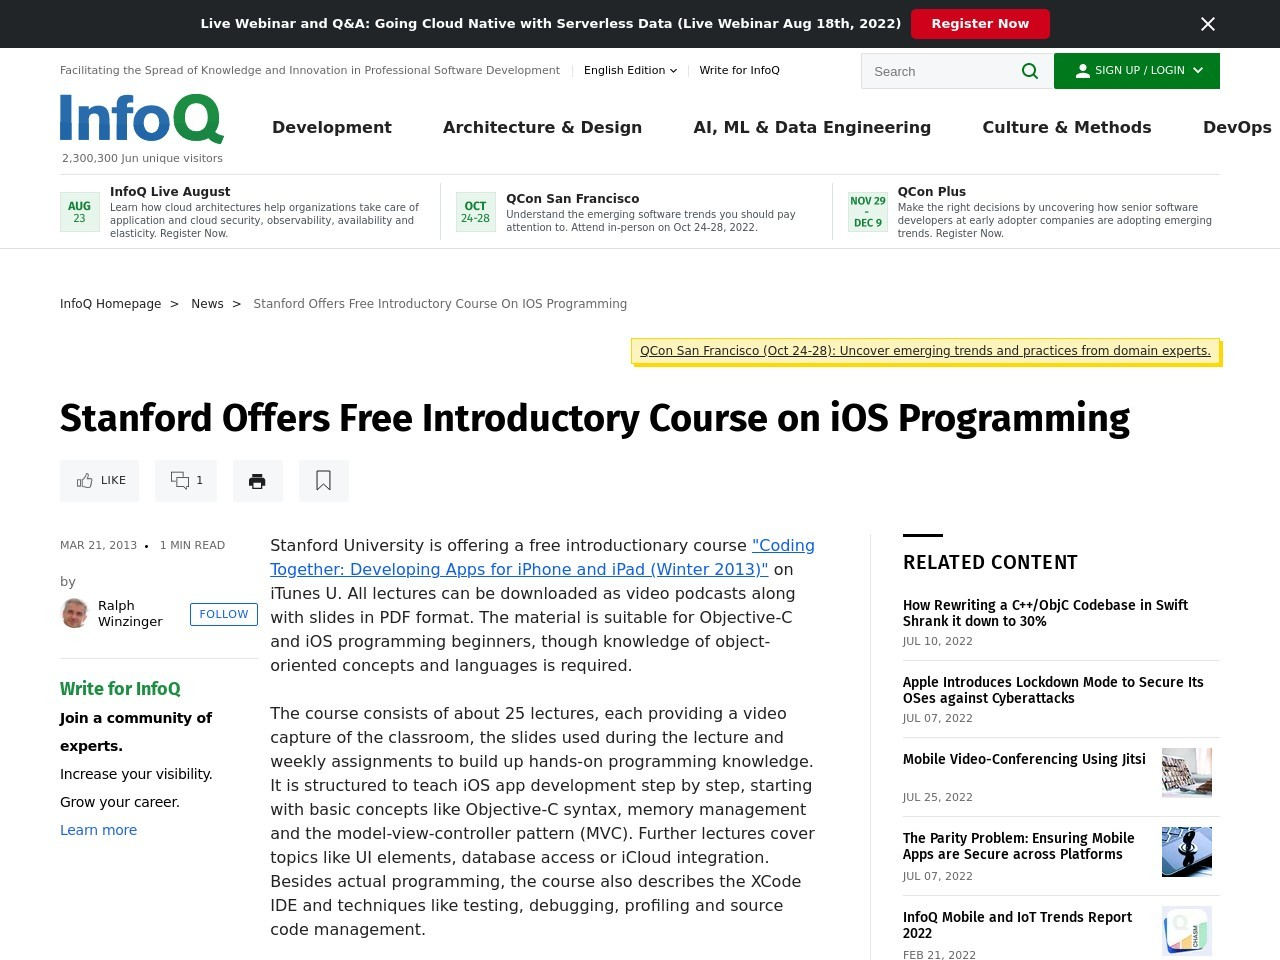 Stanford Offers Free Introductory Course on iOS Programming